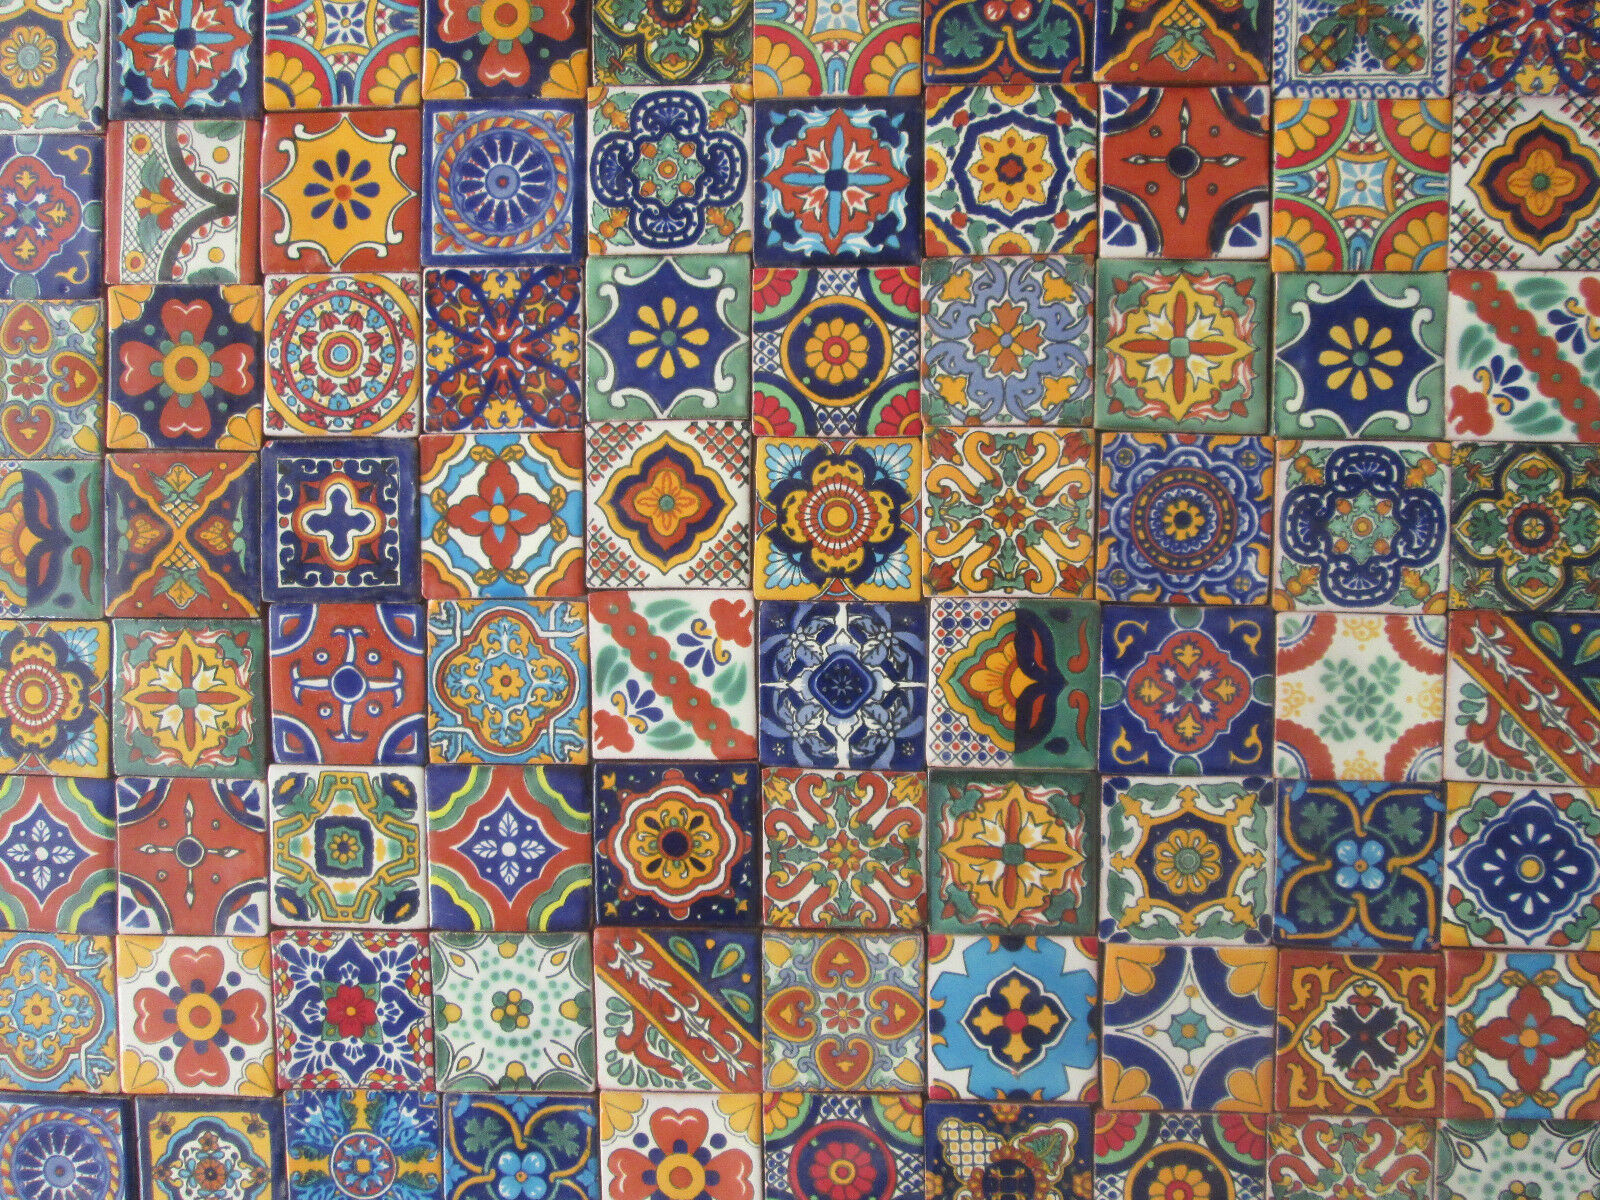 Mexican tile ebay 100 mixed designs mexican tile handmade talavera backsplash mosaic 2 x 2 dailygadgetfo Image collections